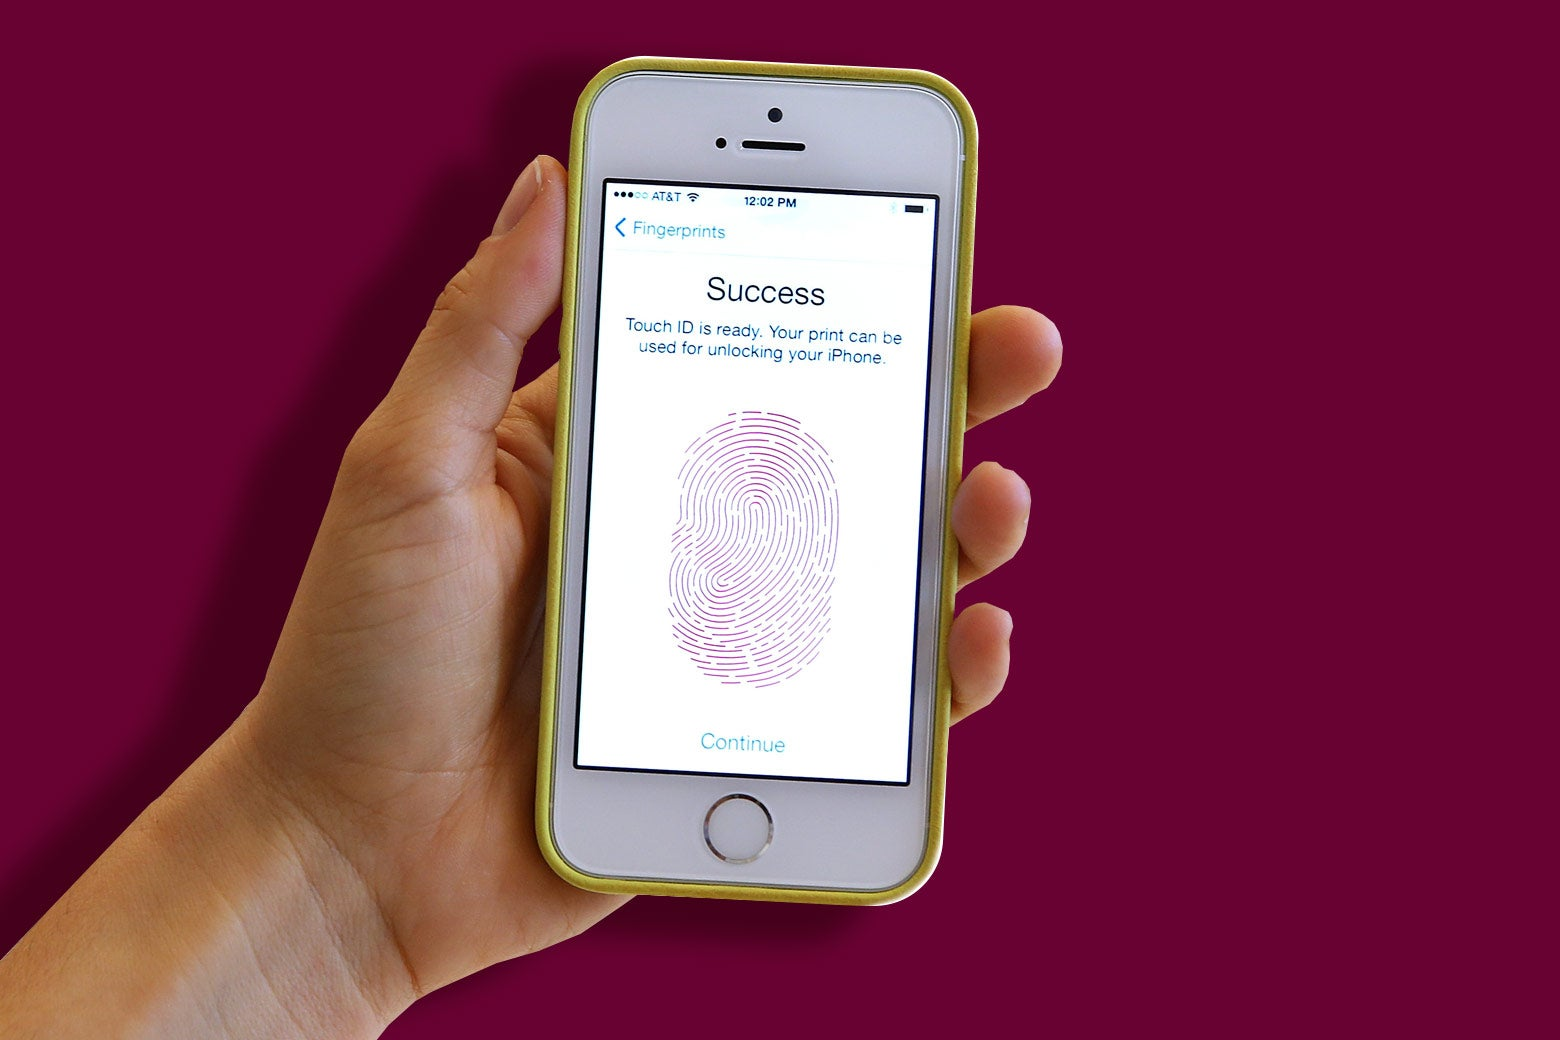 A hand holding an iPhone. The screen shows that the user has just set up Touch ID.